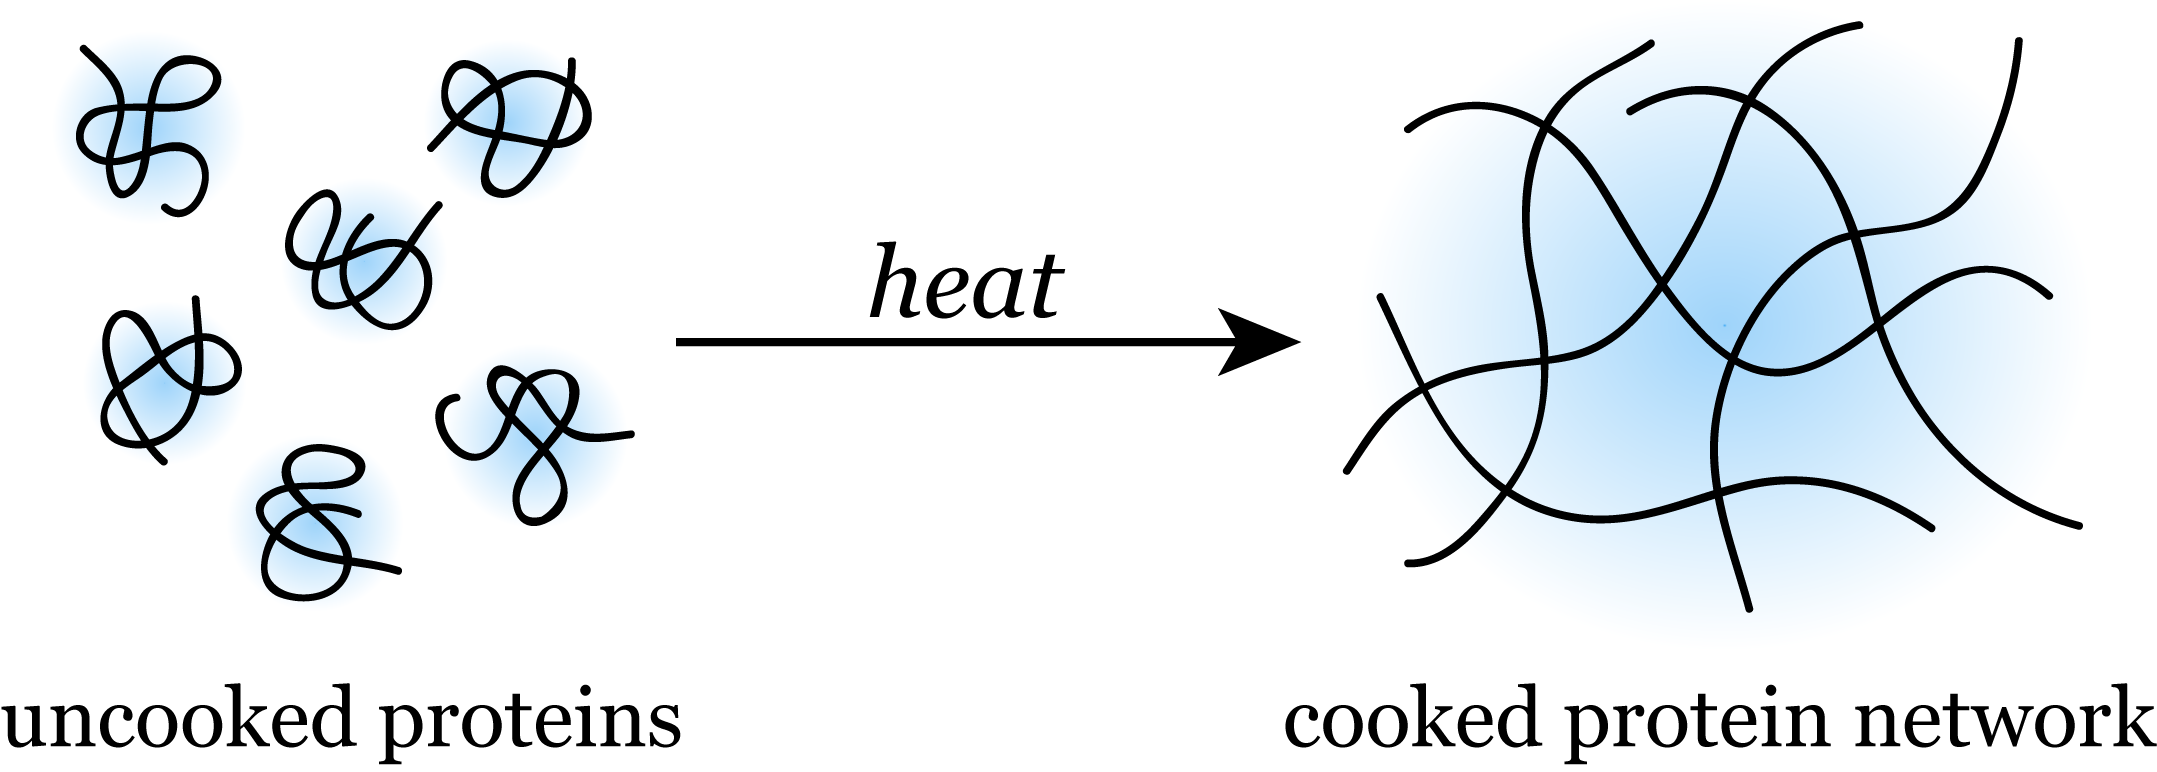 Denaturation of the protein